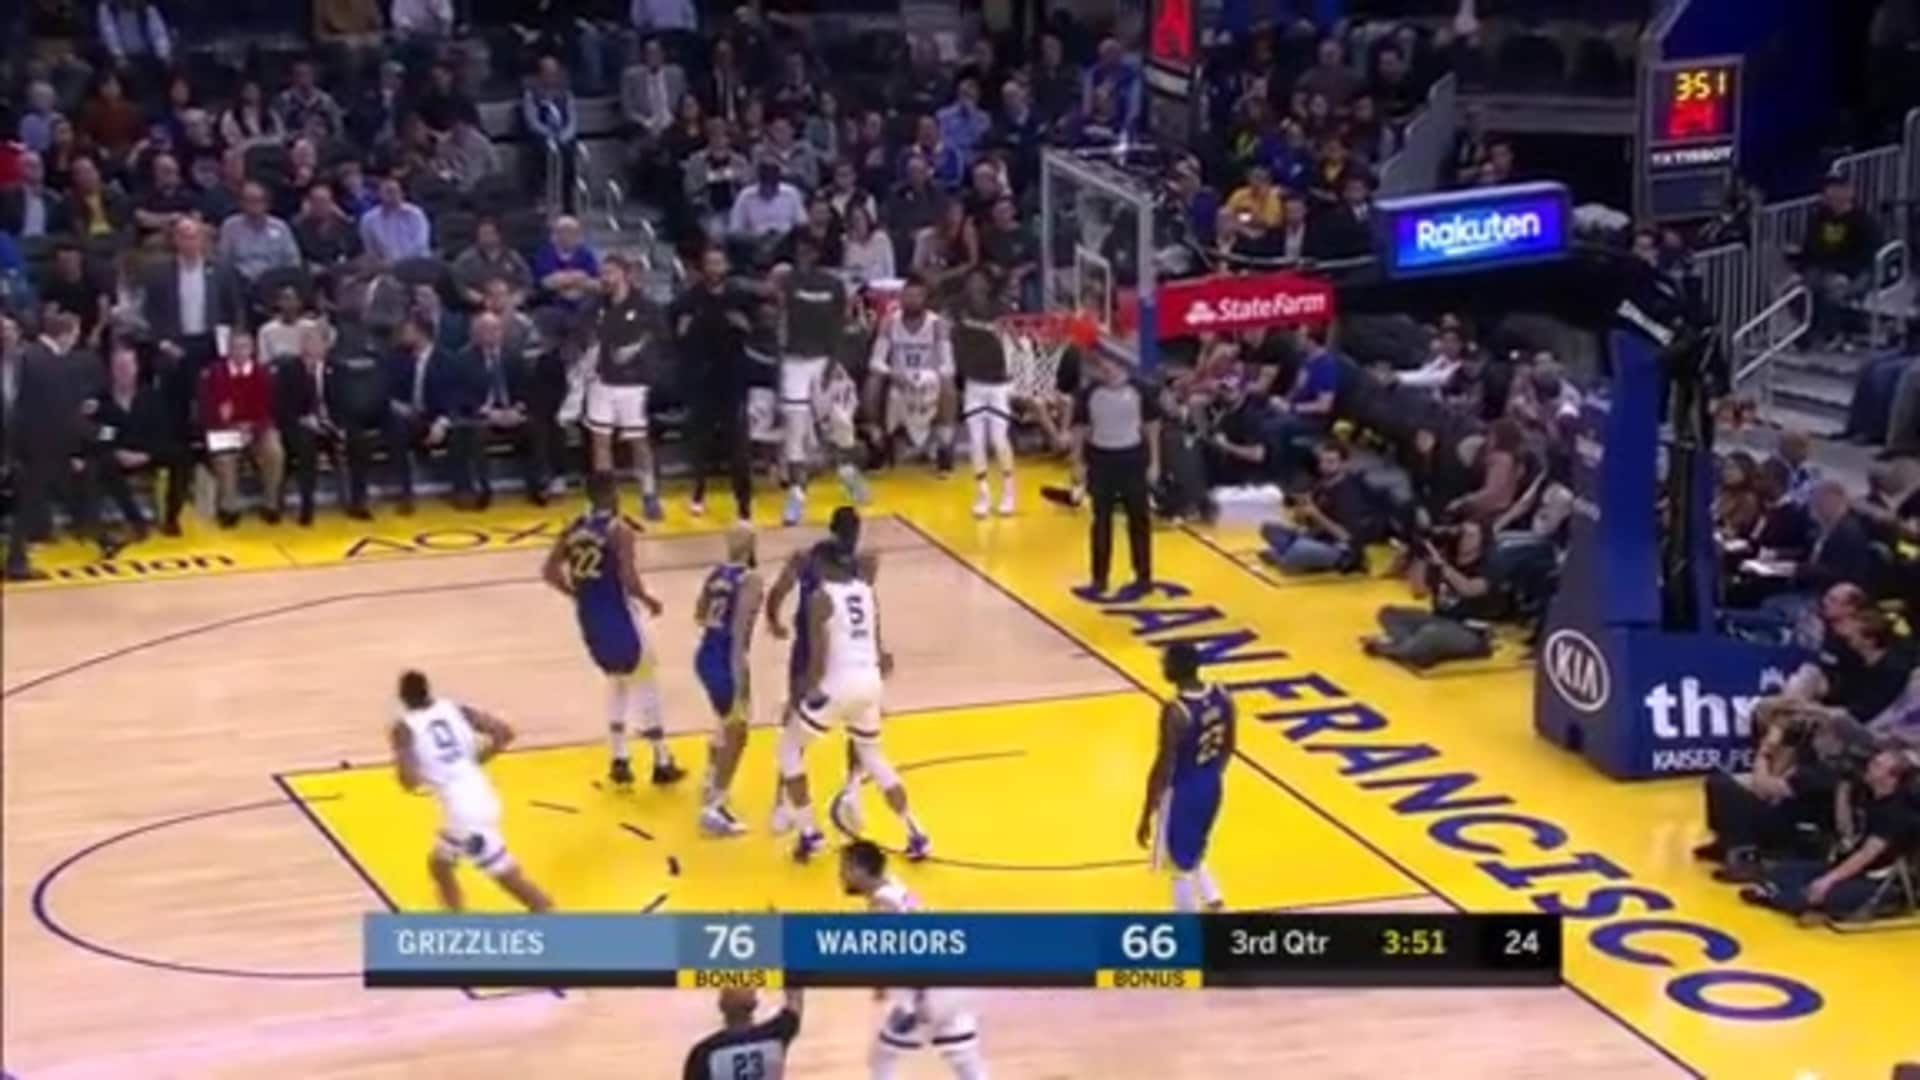 De'Anthony Melton throws a dart to Brooks for 3